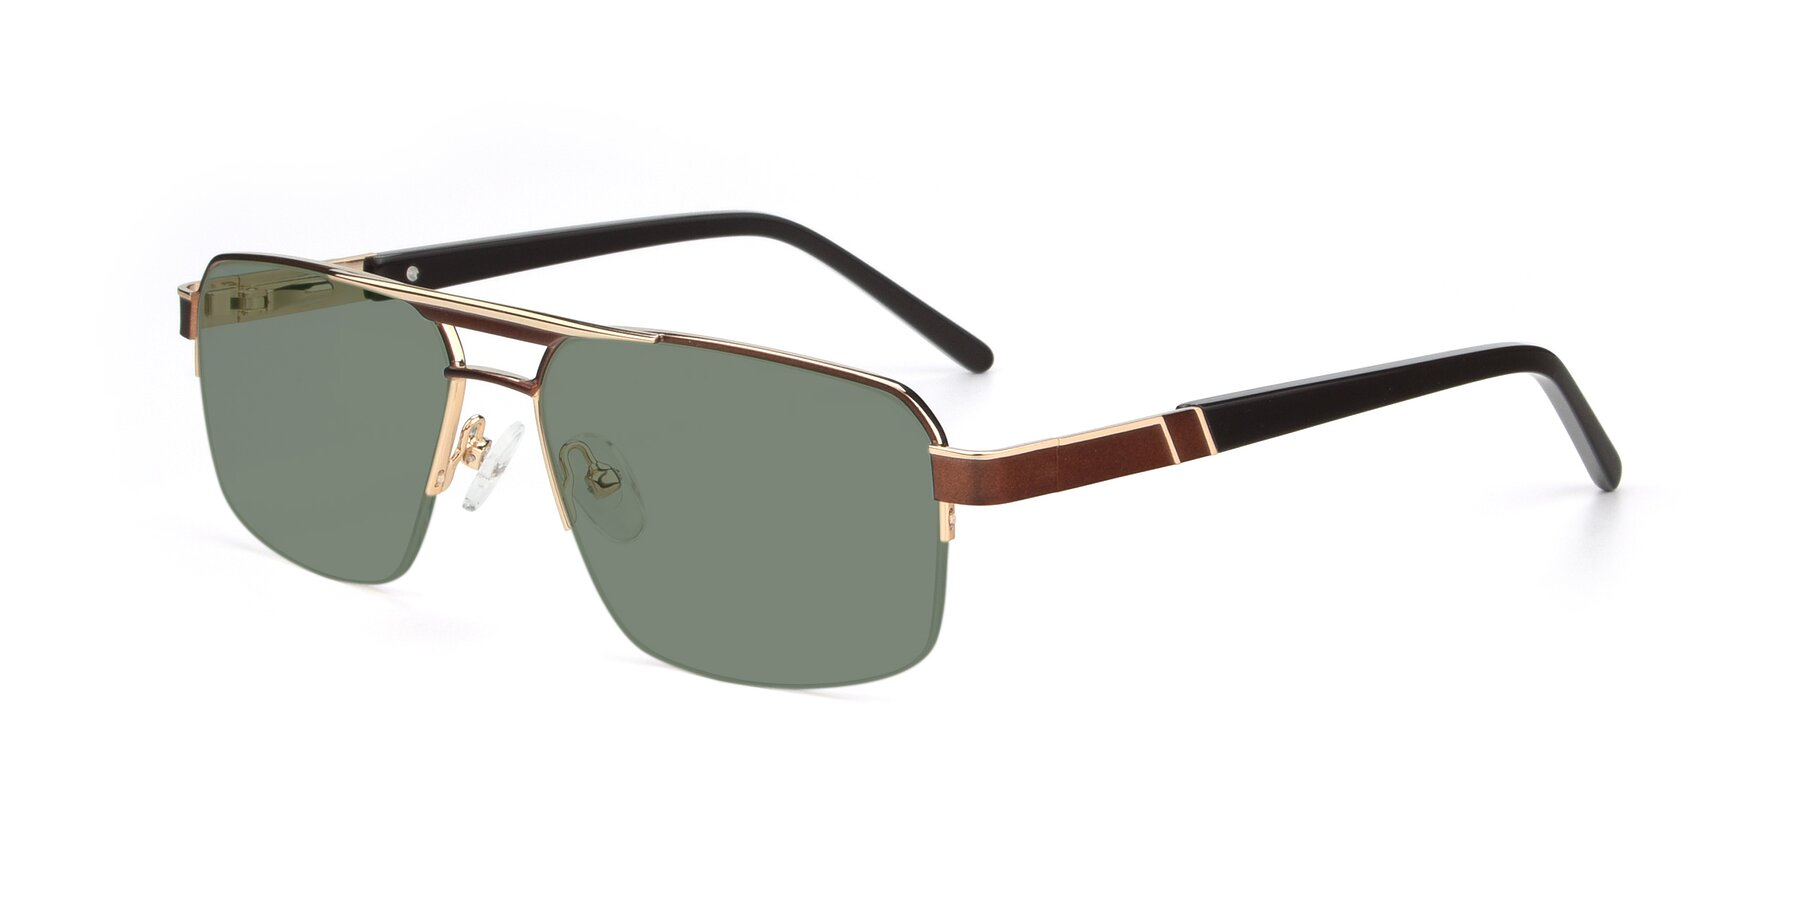 Angle of 19004 in Bronze-Gold with Medium Green Tinted Lenses